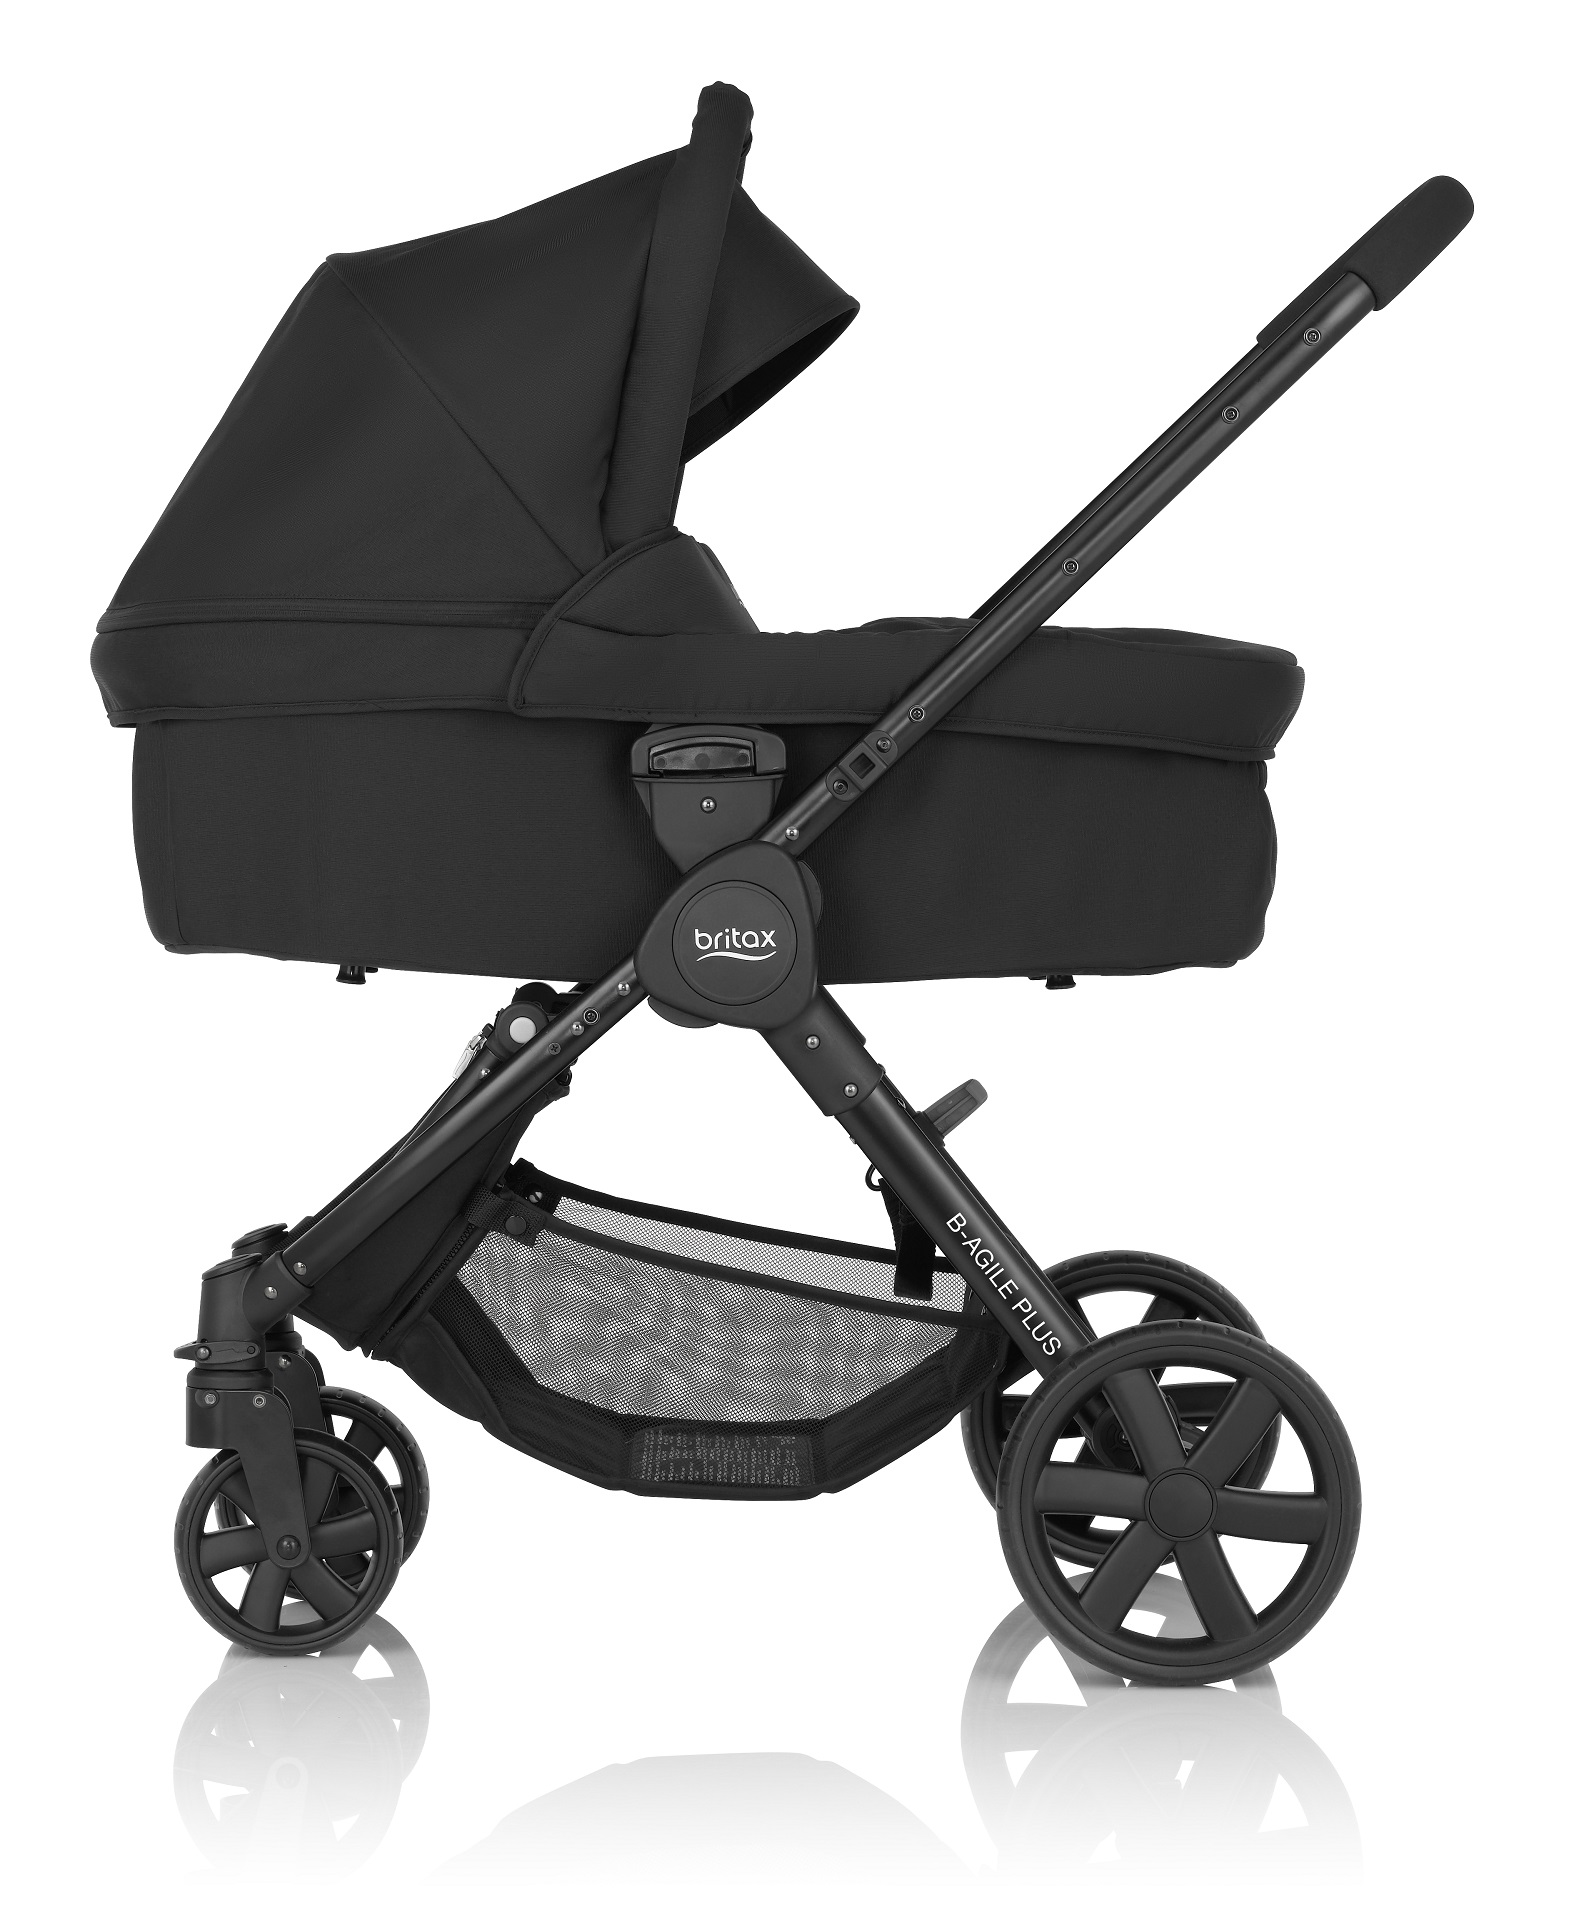 ... Britax B-Agile 4 Plus incl. Canopy Pack + Hard Carrycot Sand Beige 2017 ...  sc 1 st  worldwide shipping | kidsroom & Britax B-Agile 4 Plus incl. Canopy Pack + Hard Carrycot 2017 Sand ...